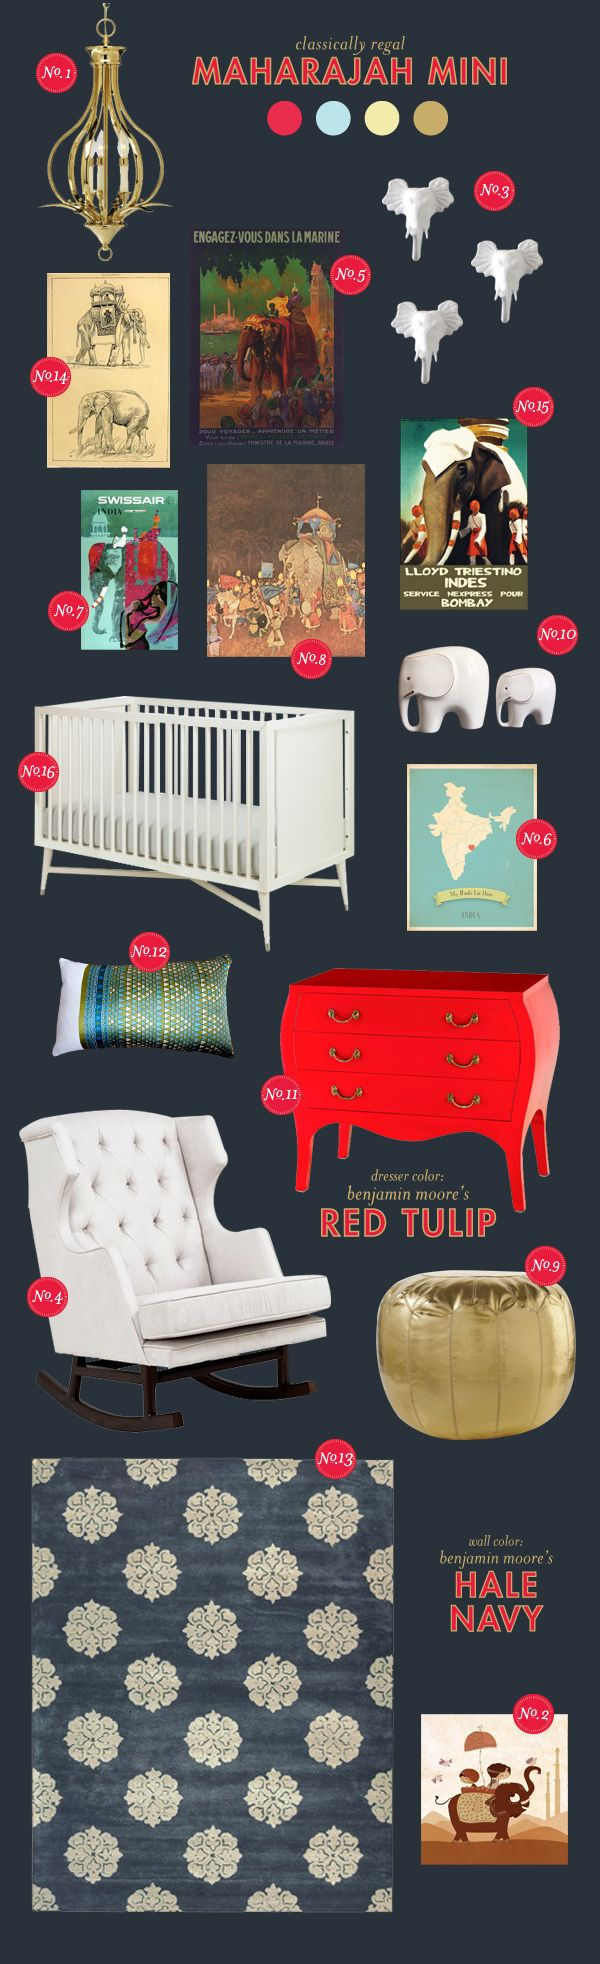 maharajah-mini elephant baby nursery inspiration board -- maybe more oranges than reds?